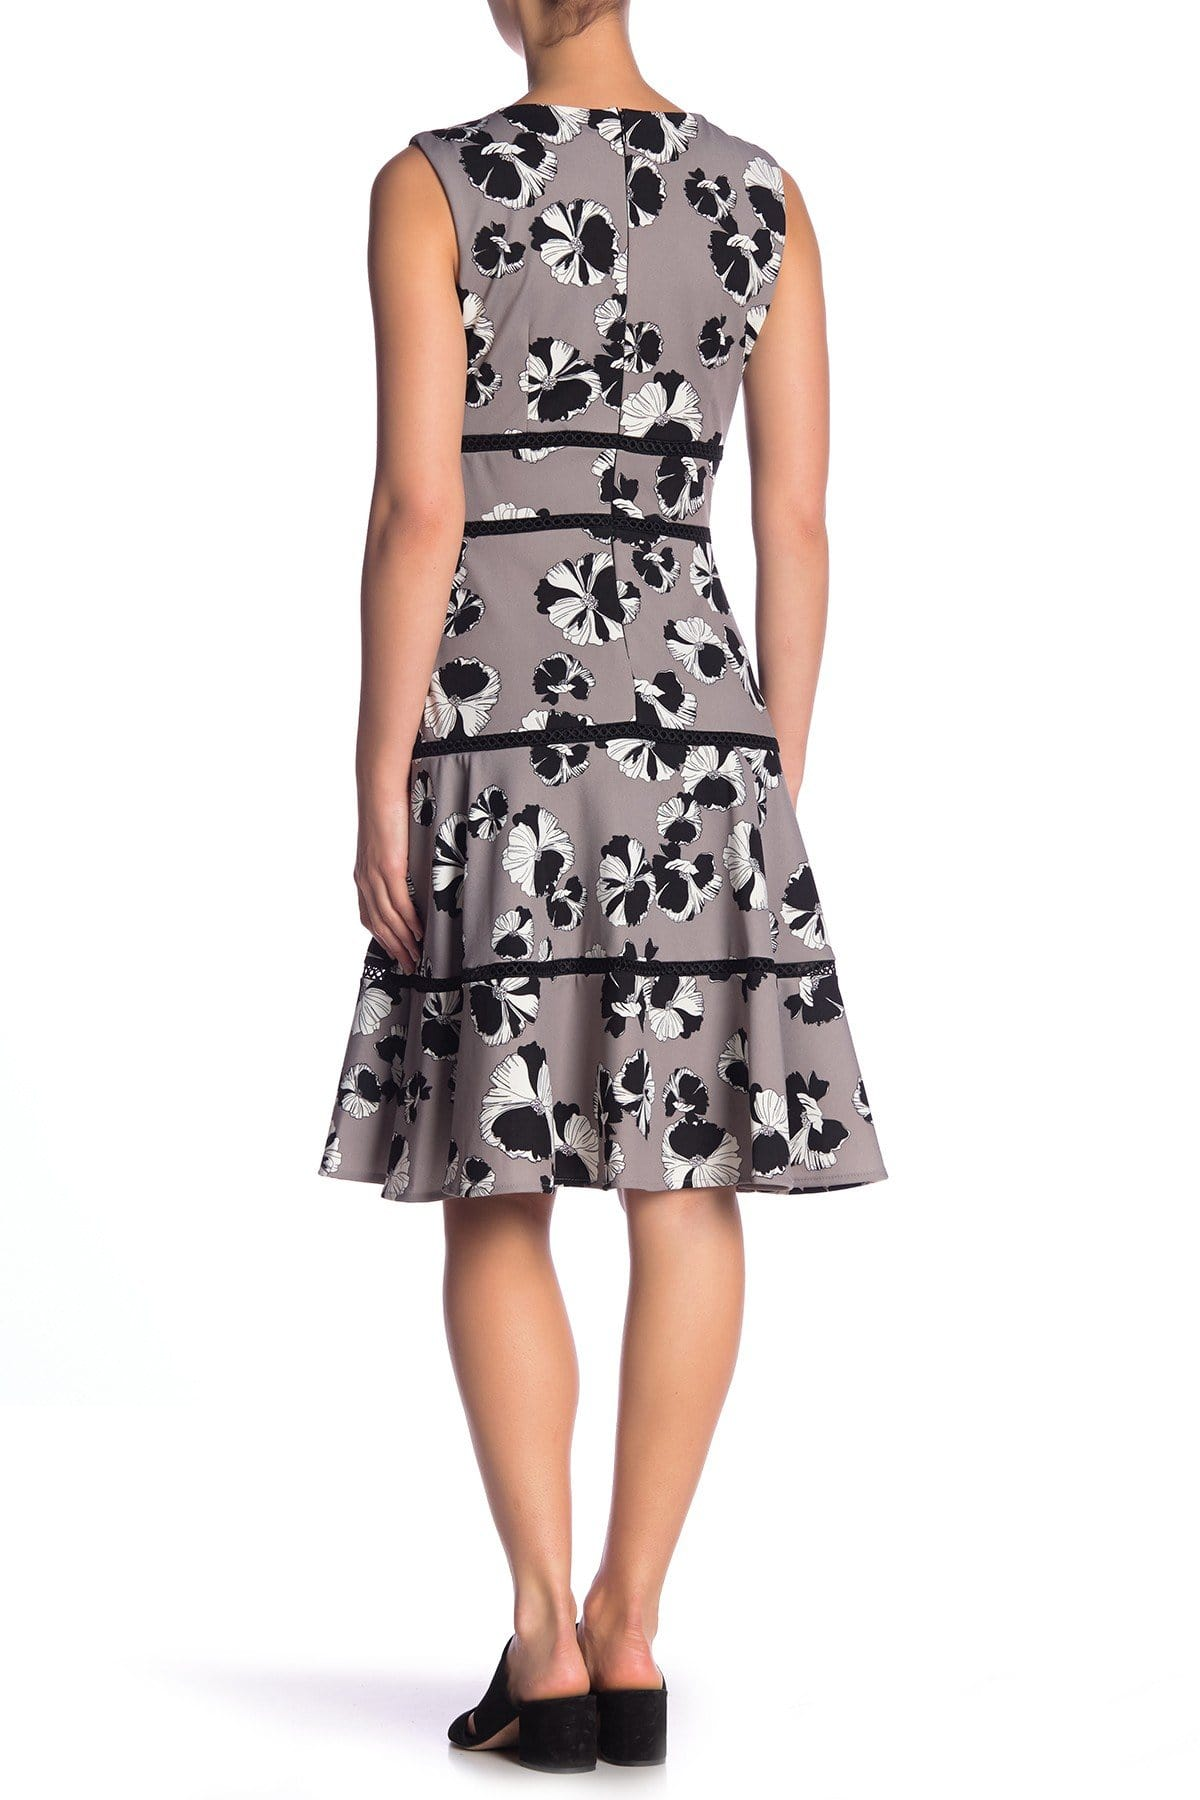 Taylor - 1169M Floral Print V Neck Sleeveless Crepe Dress In Black and Gray